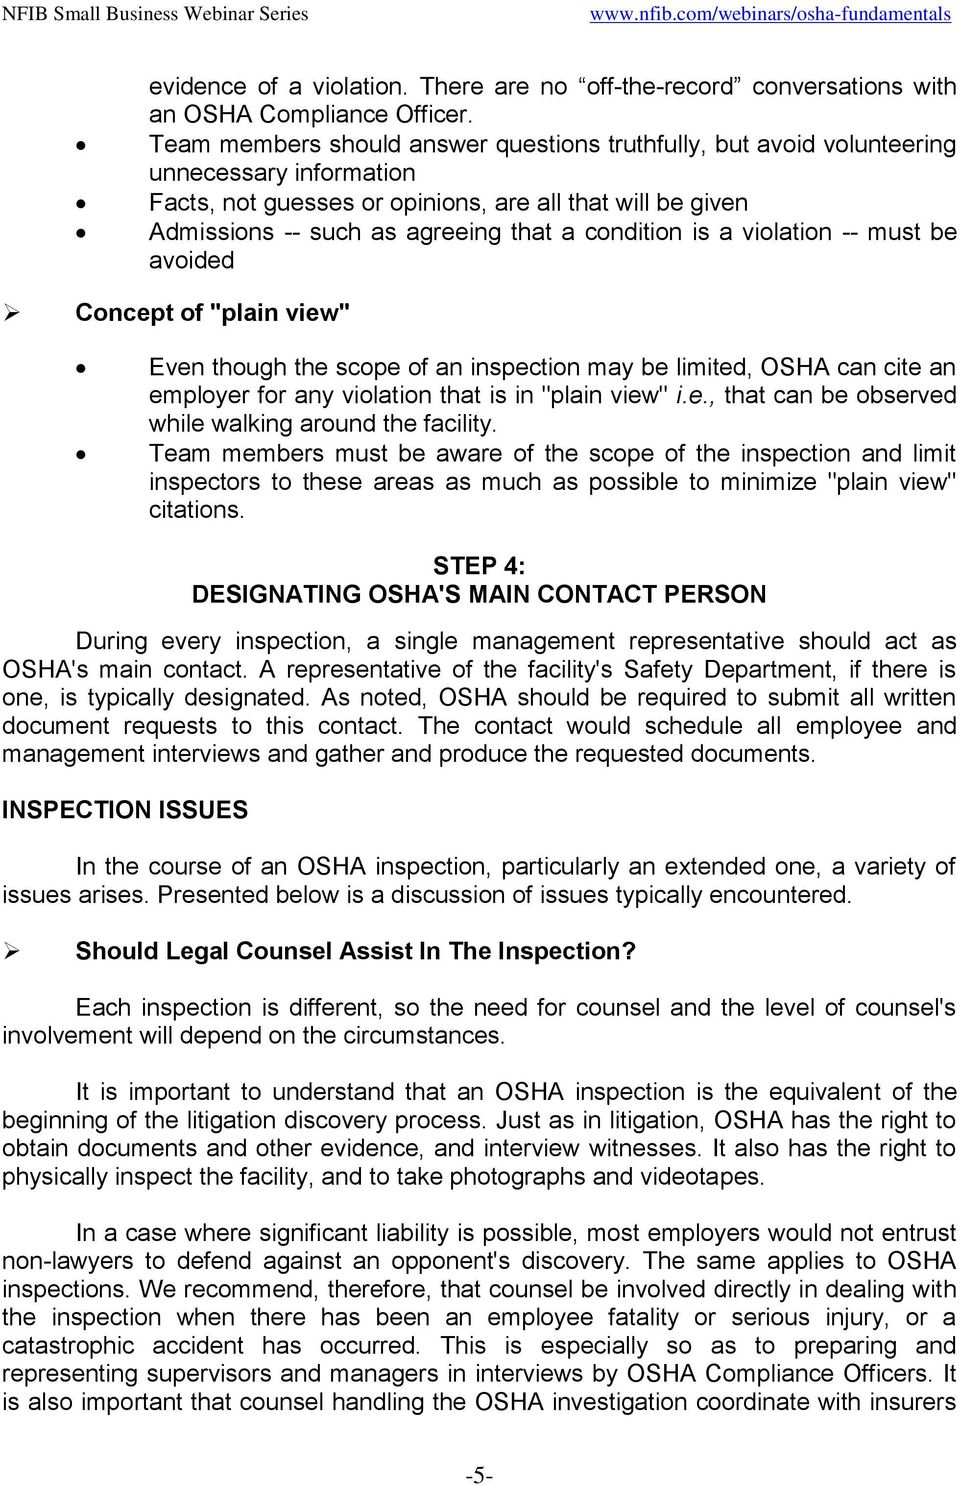 "condition is a violation -- must be avoided Concept of ""plain view"" Even though the scope of an inspection may be limited, OSHA can cite an employer for any violation that is in ""plain view"" i.e., that can be observed while walking around the facility."